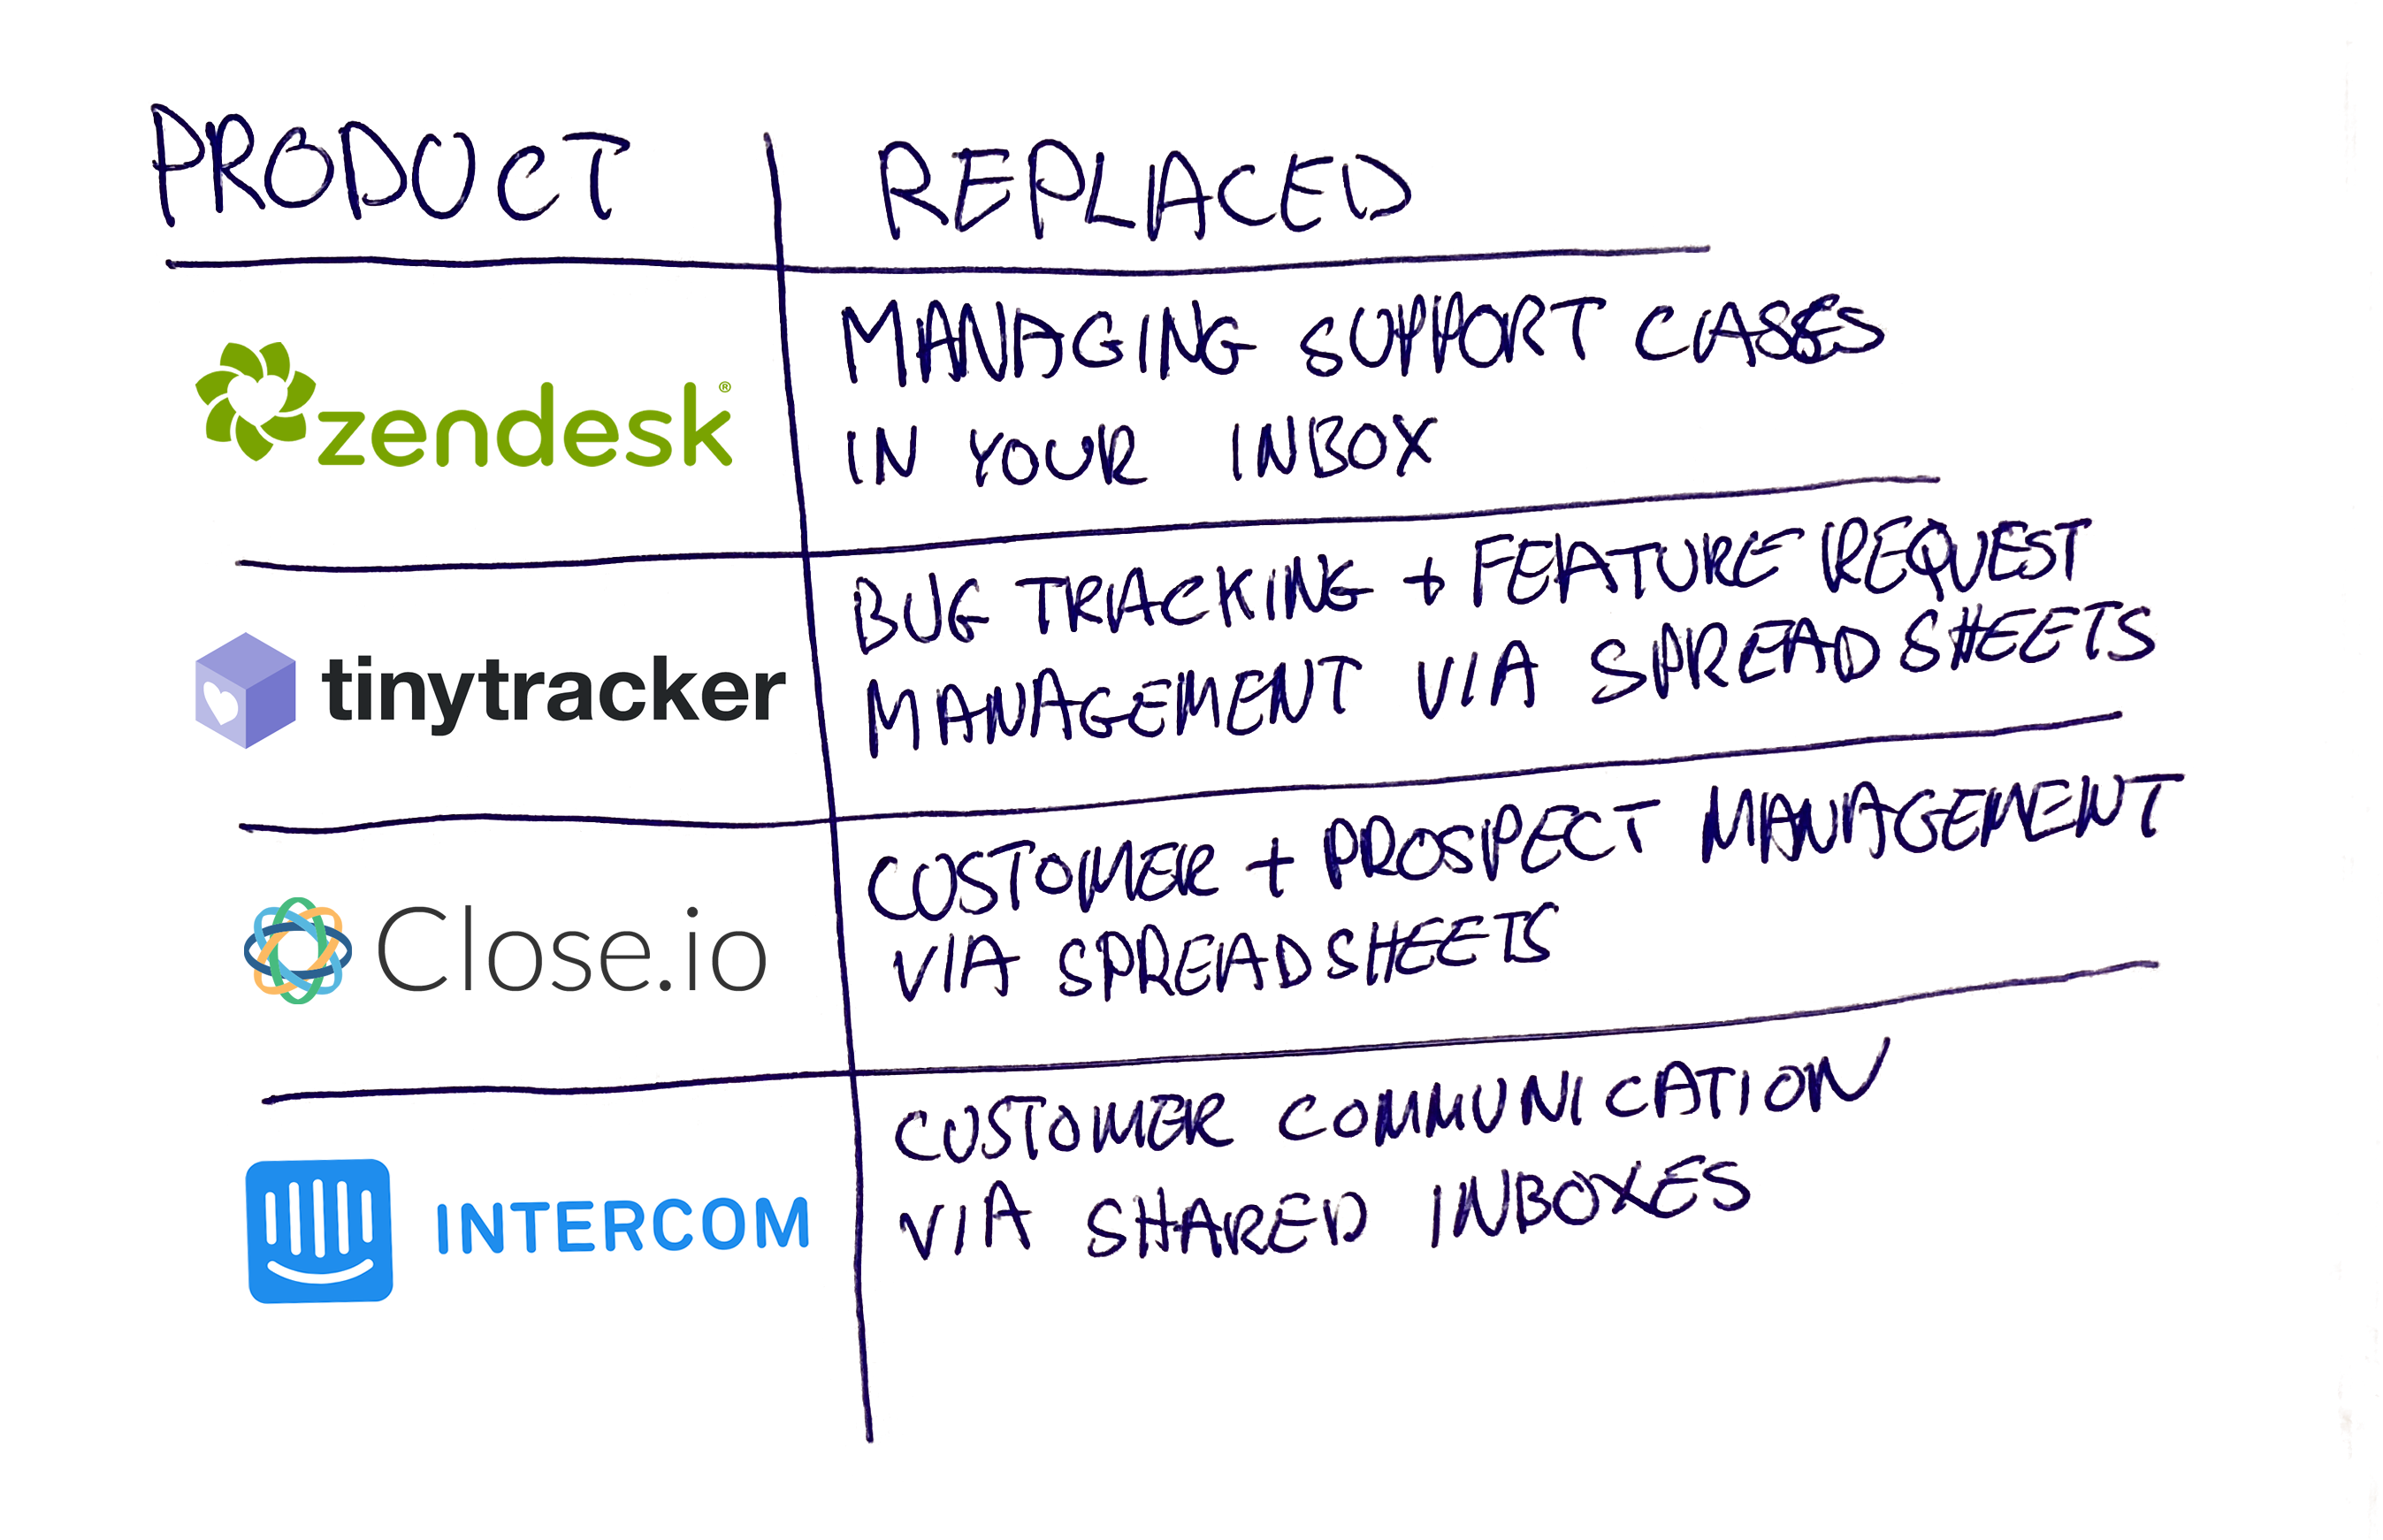 TinyTracker Products Replace Process